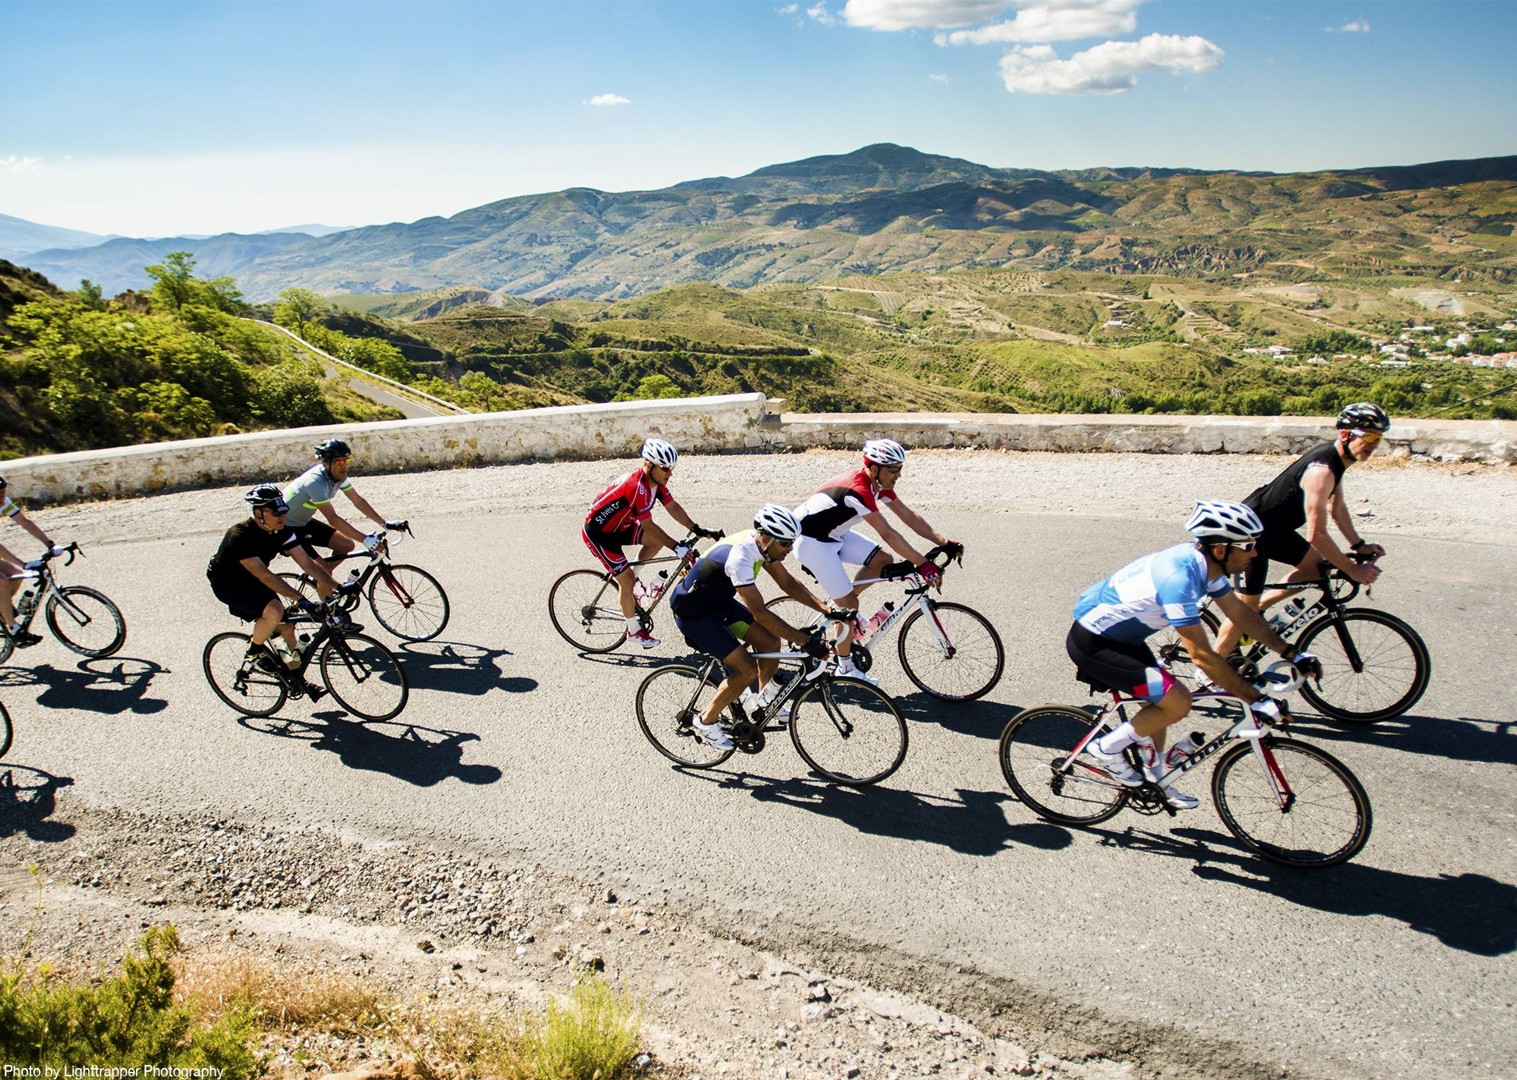 spain-col-road-cycling-guided-holiday-incredible-views.jpg - Southern Spain - Andalucia - Los Pueblos Blancos - Road Cycling